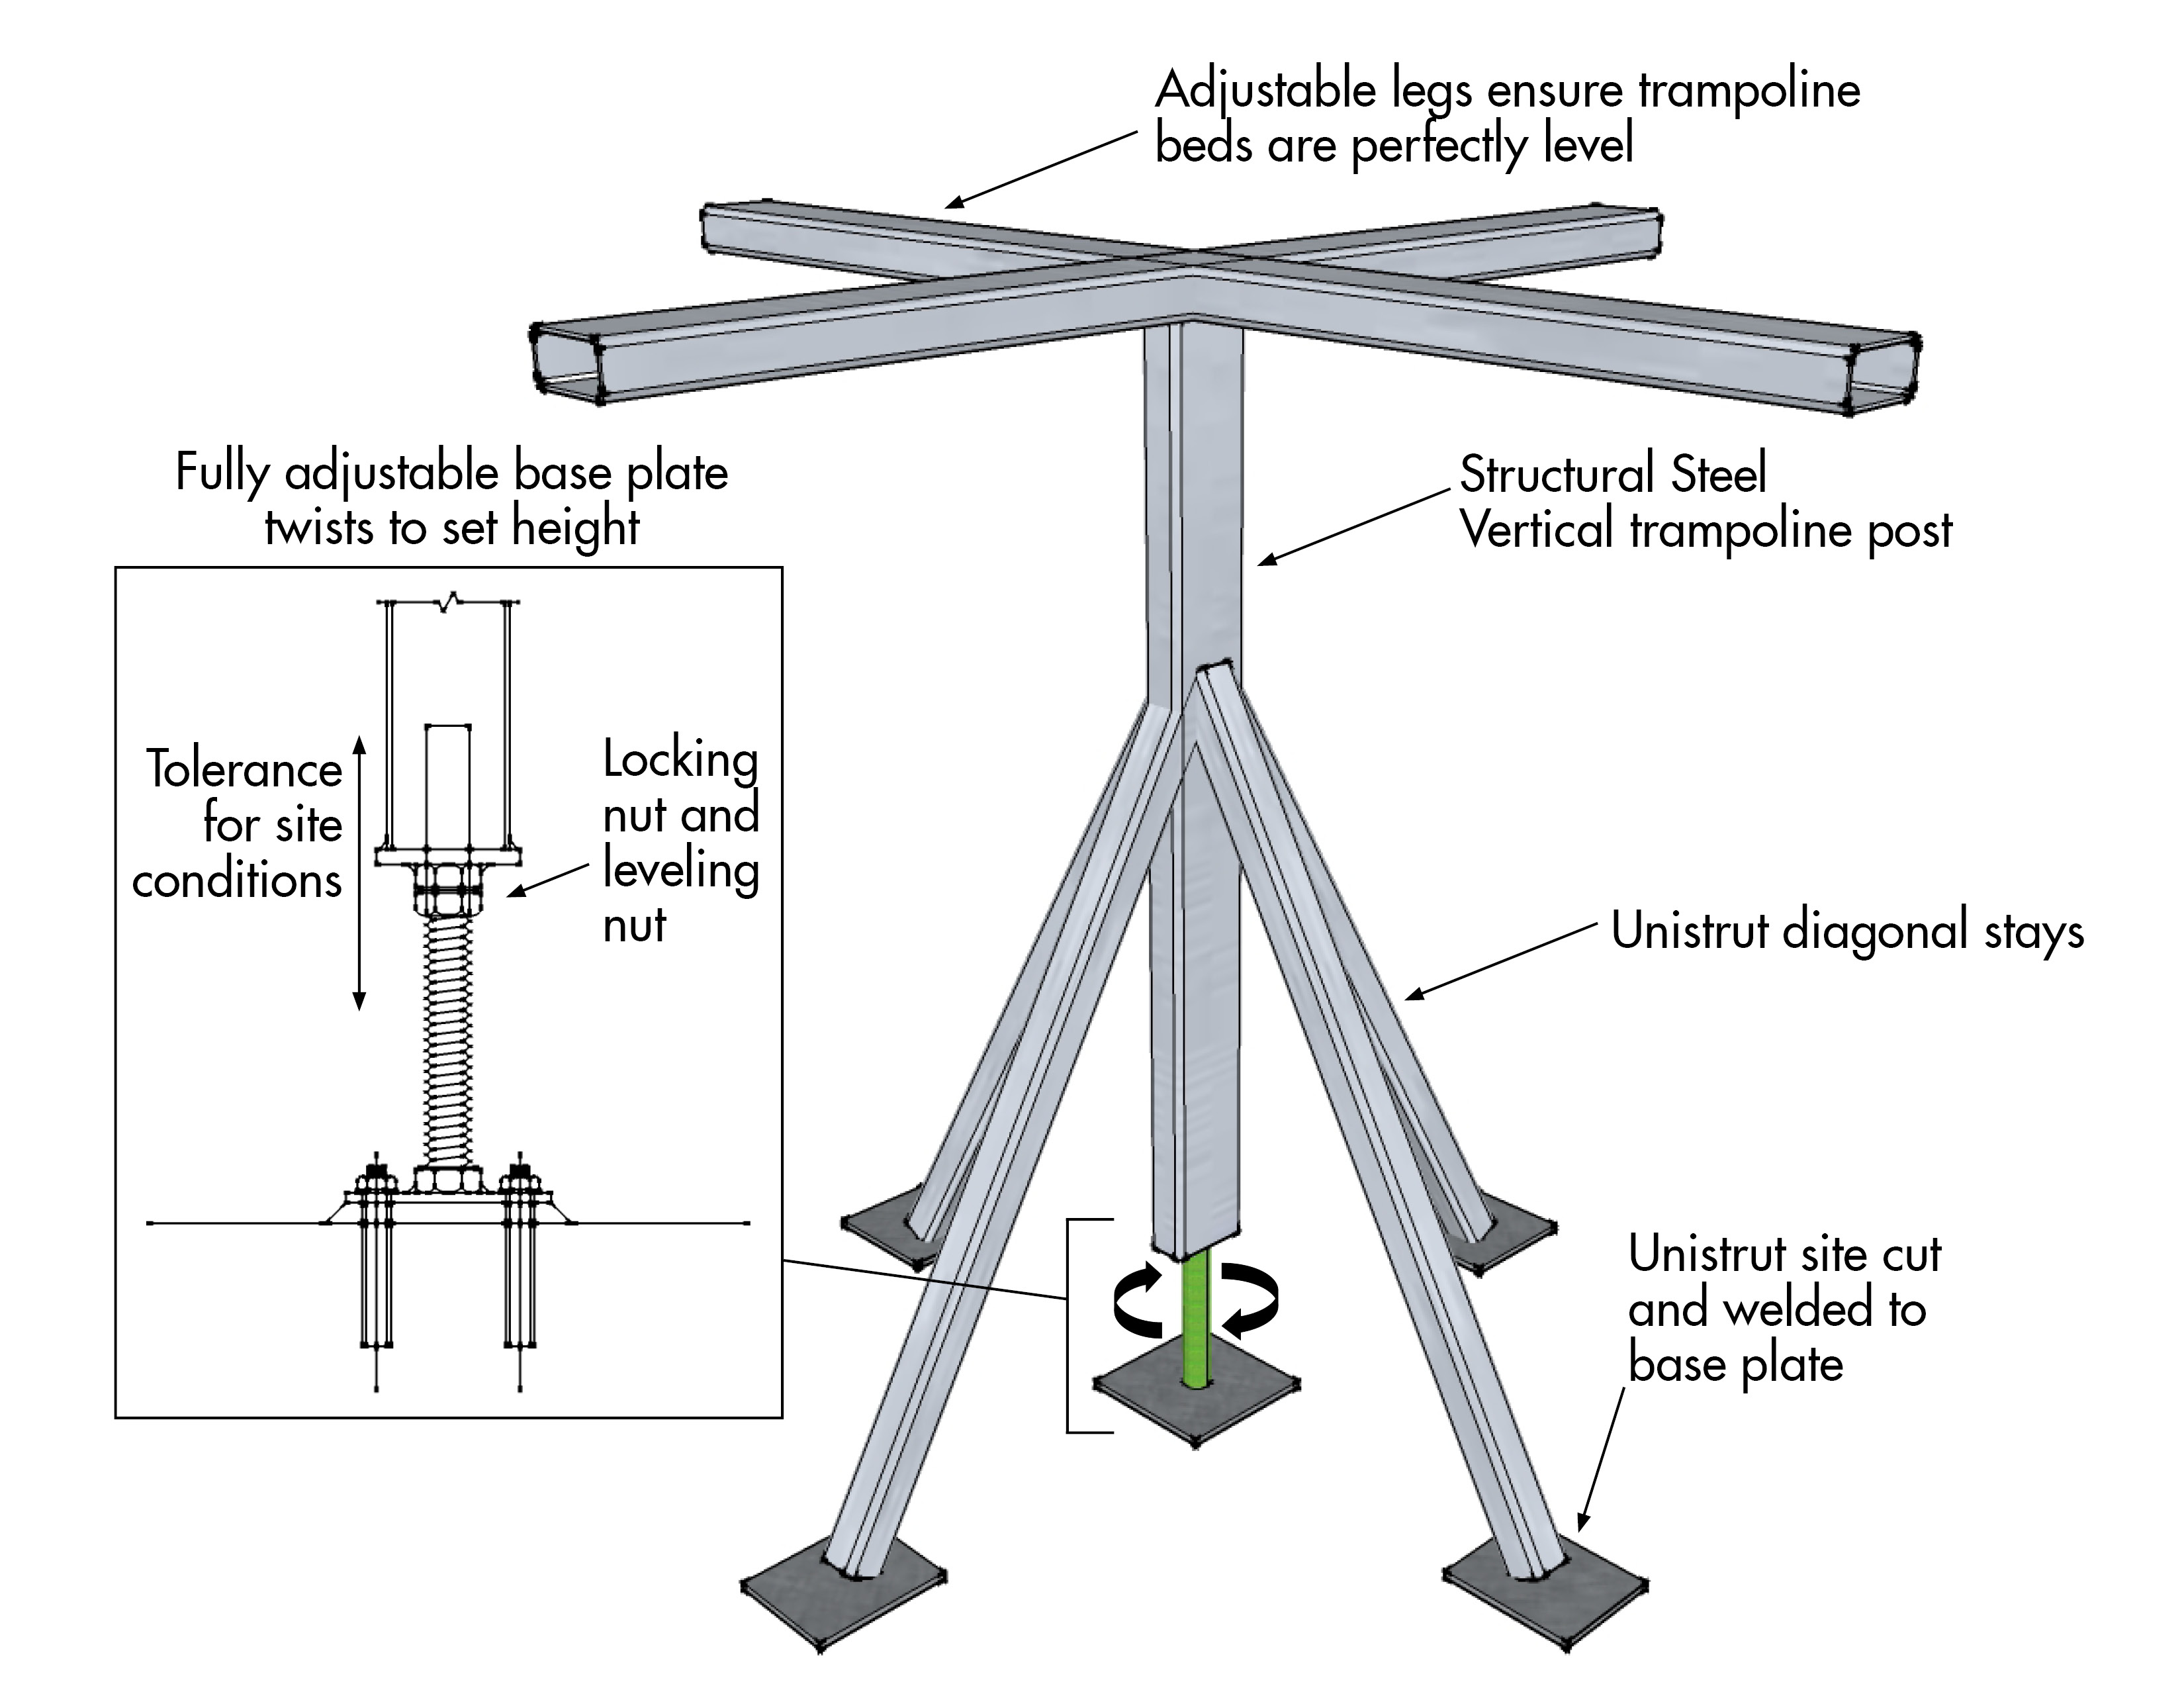 House of Air San Francisco Structural Diagram of Trampoline Base Plates